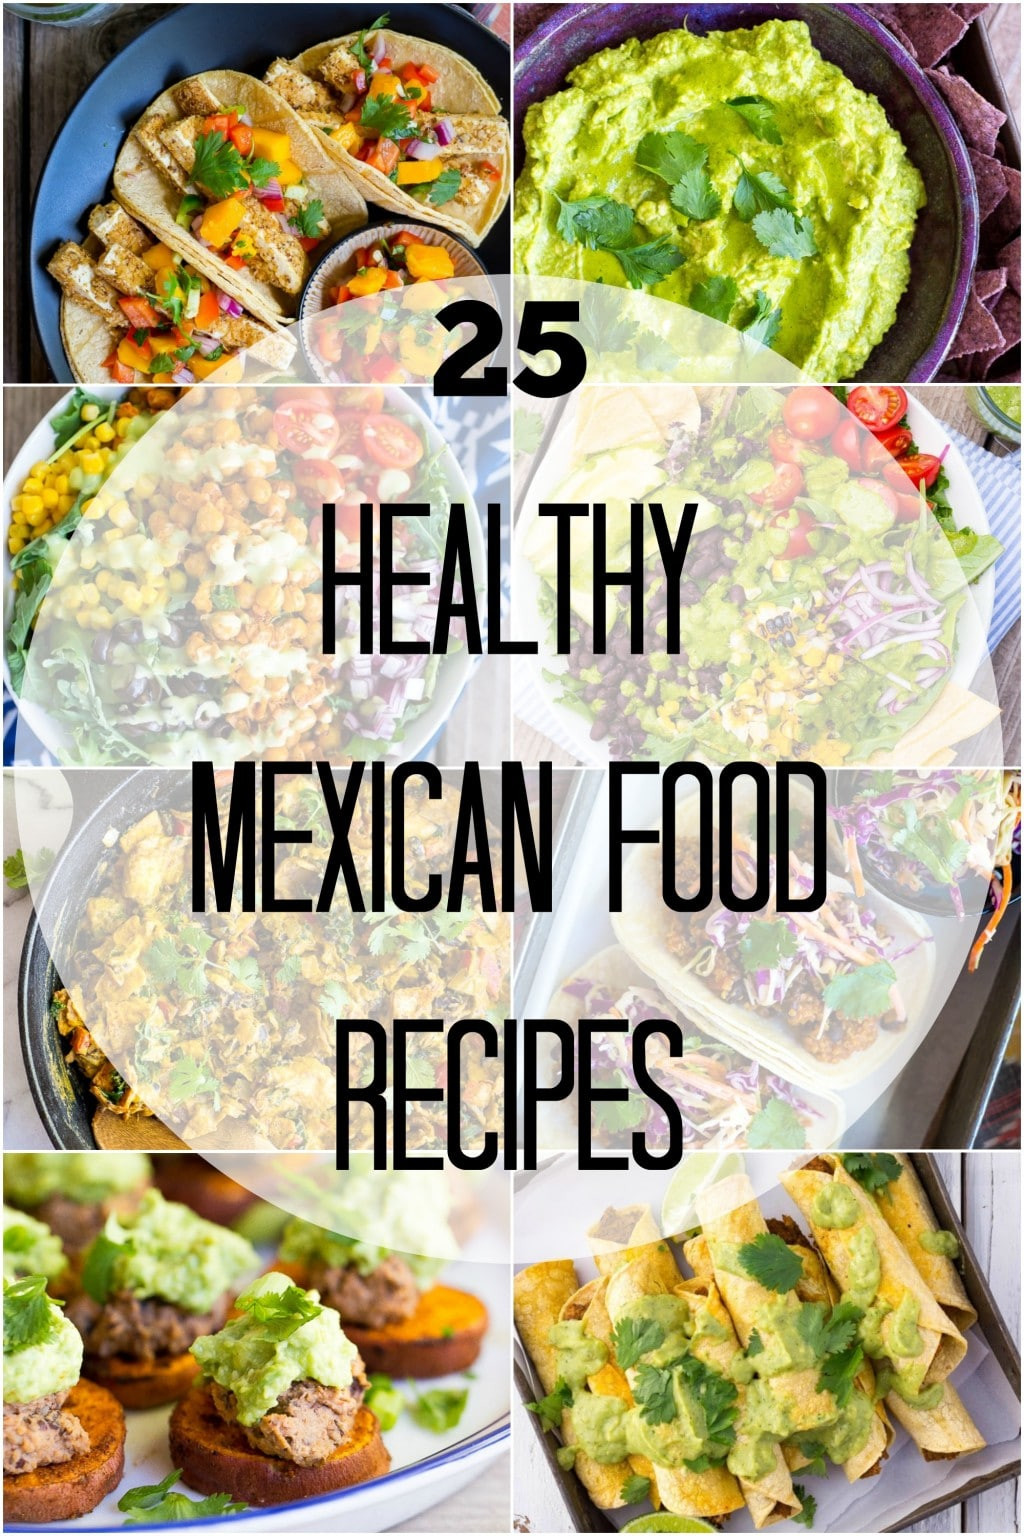 Healthy Mexican Snacks  25 Healthy Mexican Food Recipes She Likes Food